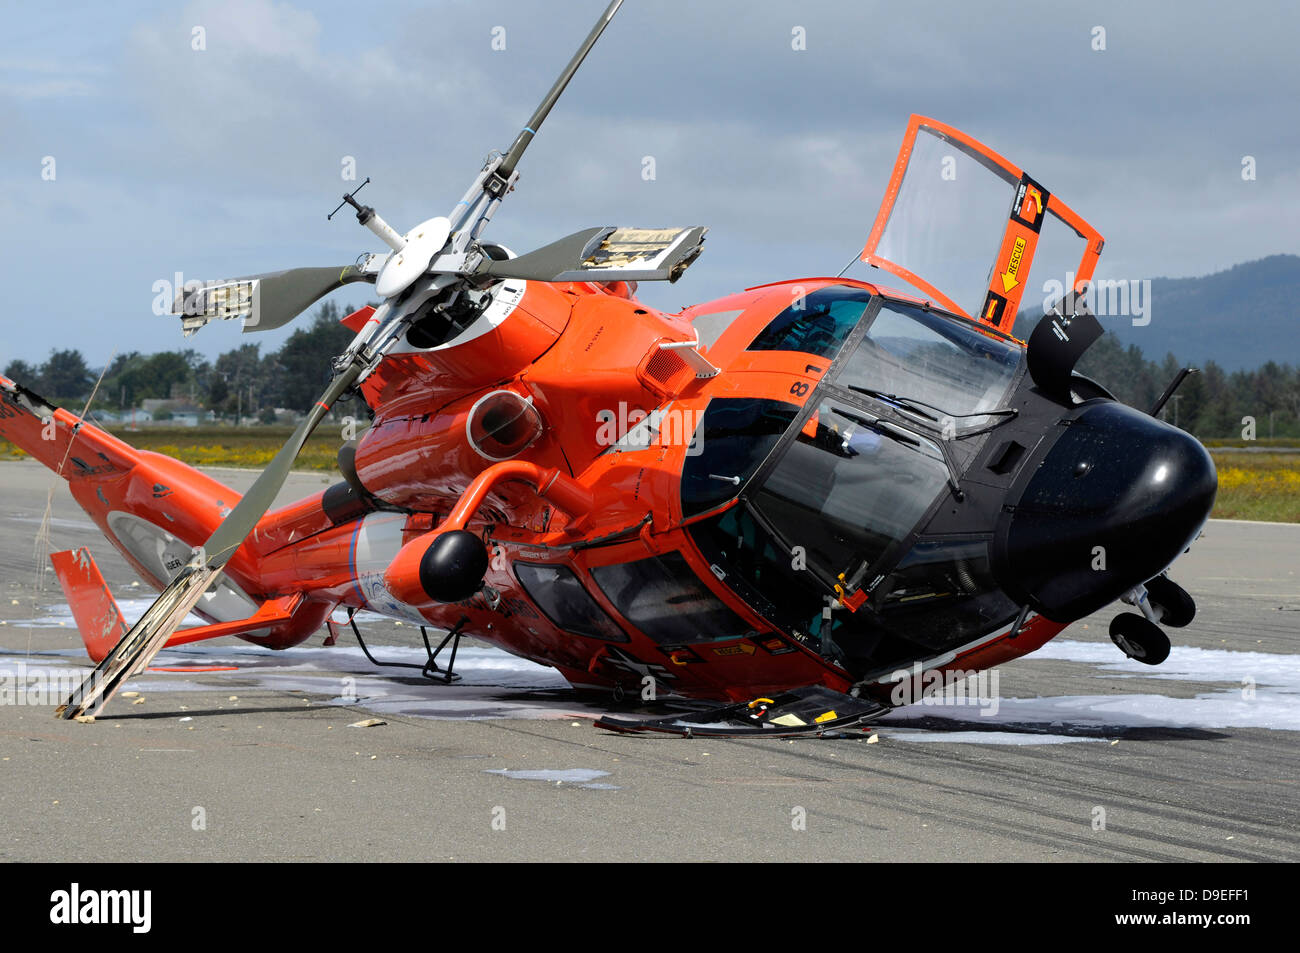 bell helicopter 525 relentless with 1143453 on Watch likewise 2008 bell 407 helicopter for s besides Luxury List 662 Mph Business Jet Charter Has Need Speed Meet Gulfstream G550 together with Um Dos Avioes Mais Luxuoso Do Mundo also eckhel   sikorsky s76b.